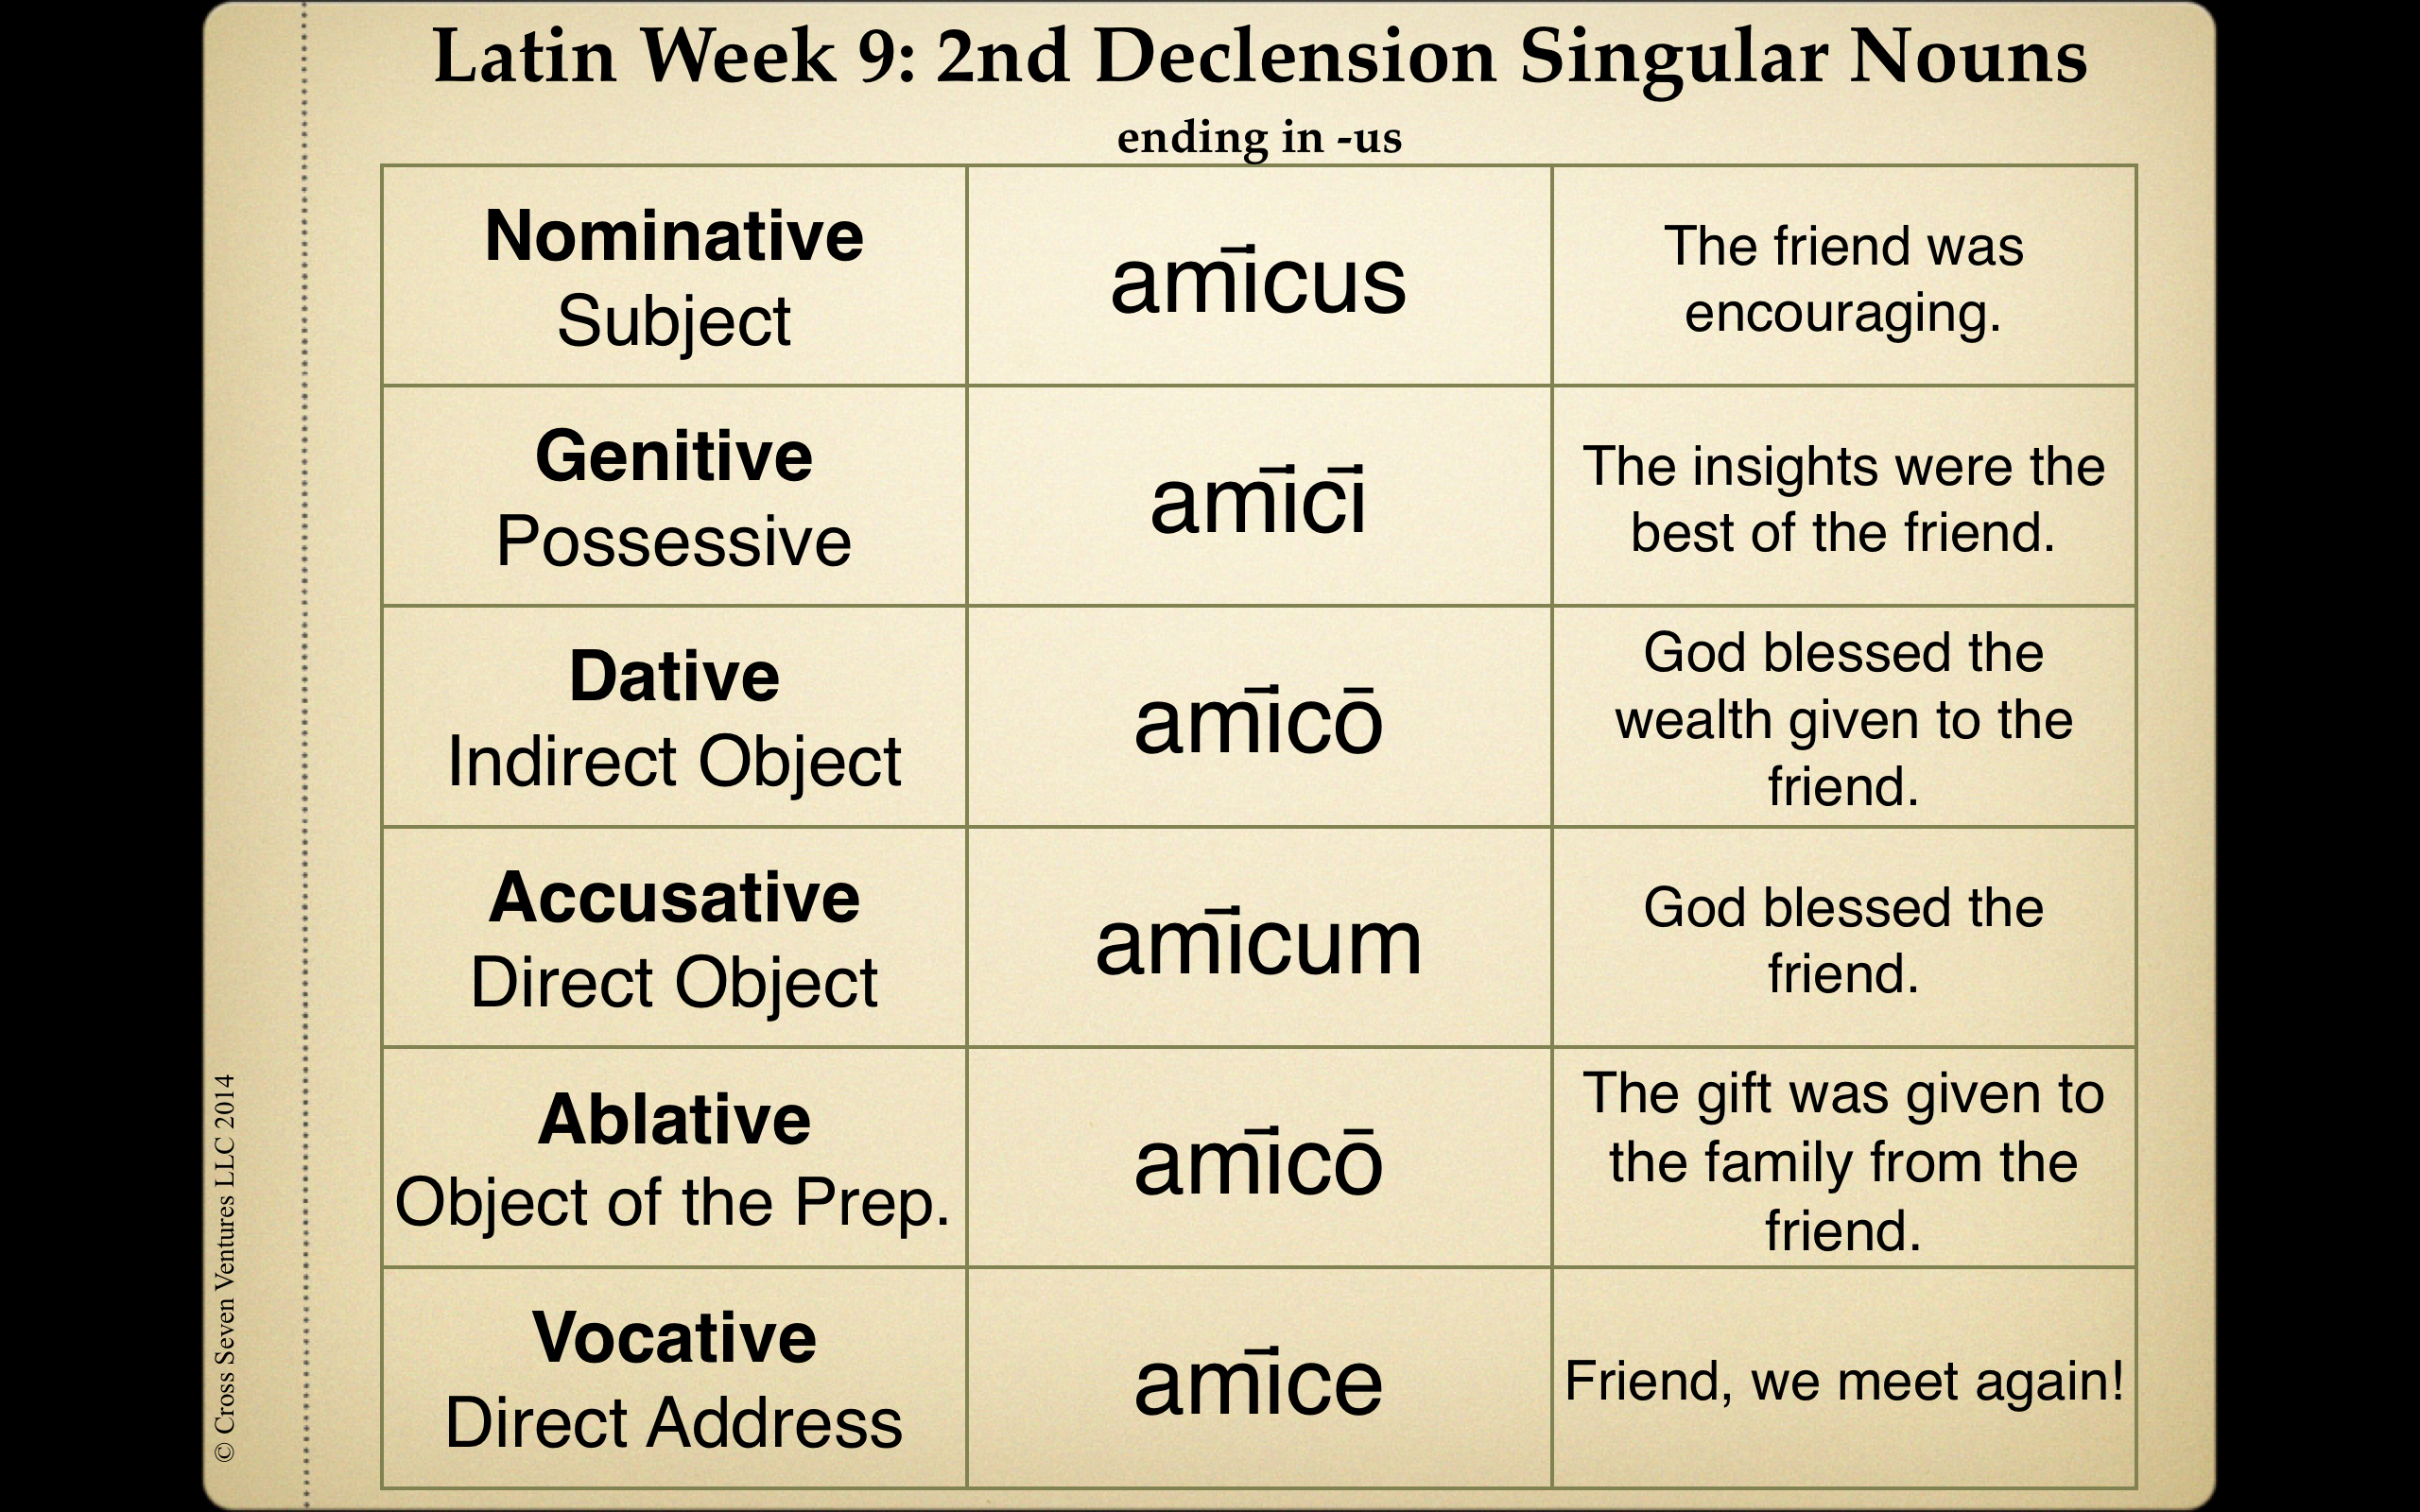 Latin Words For Friend